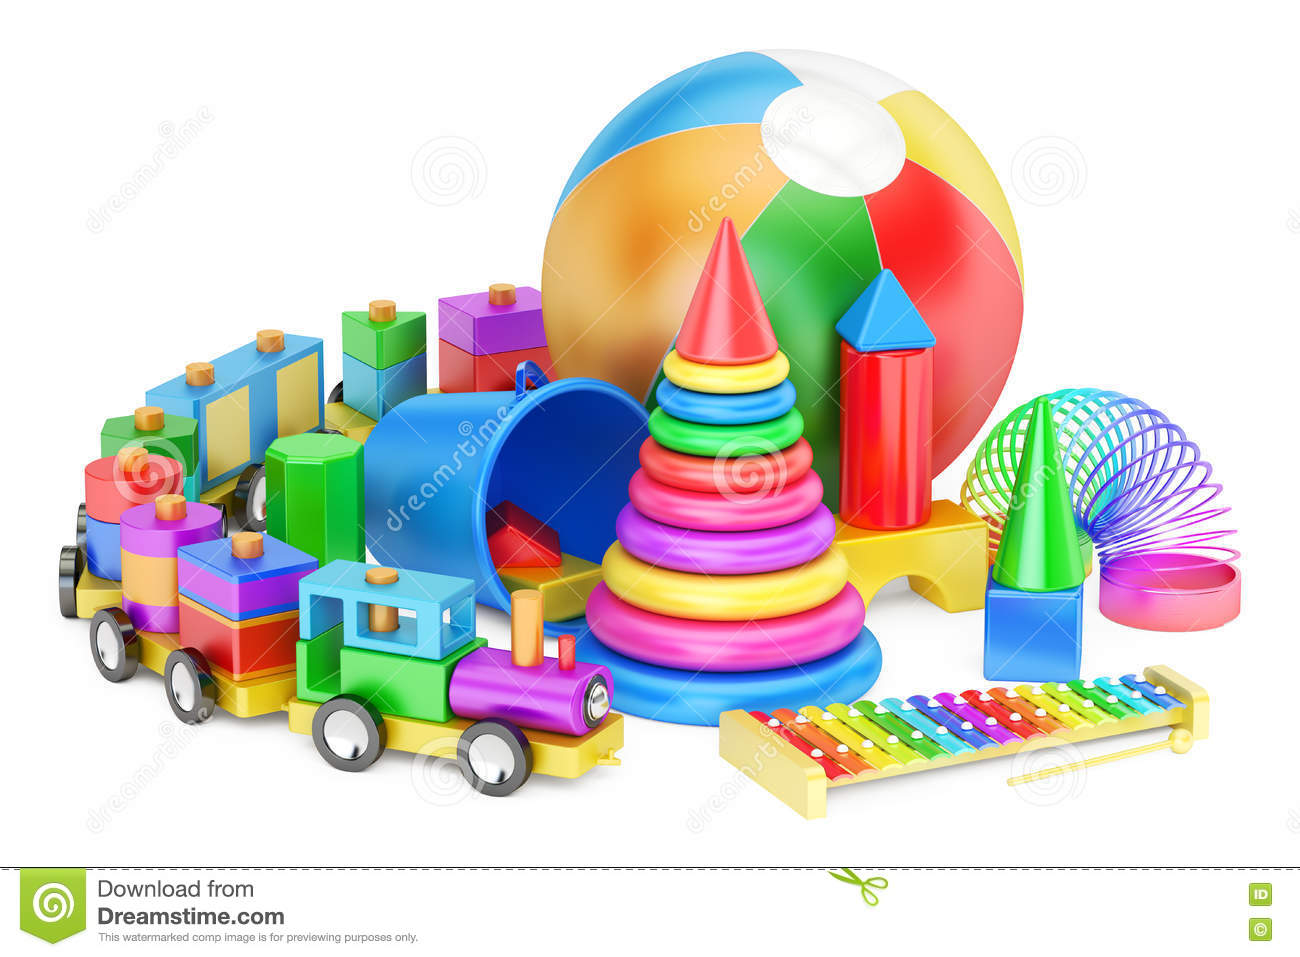 Kids toys concept, 3D rendering isolated on white background